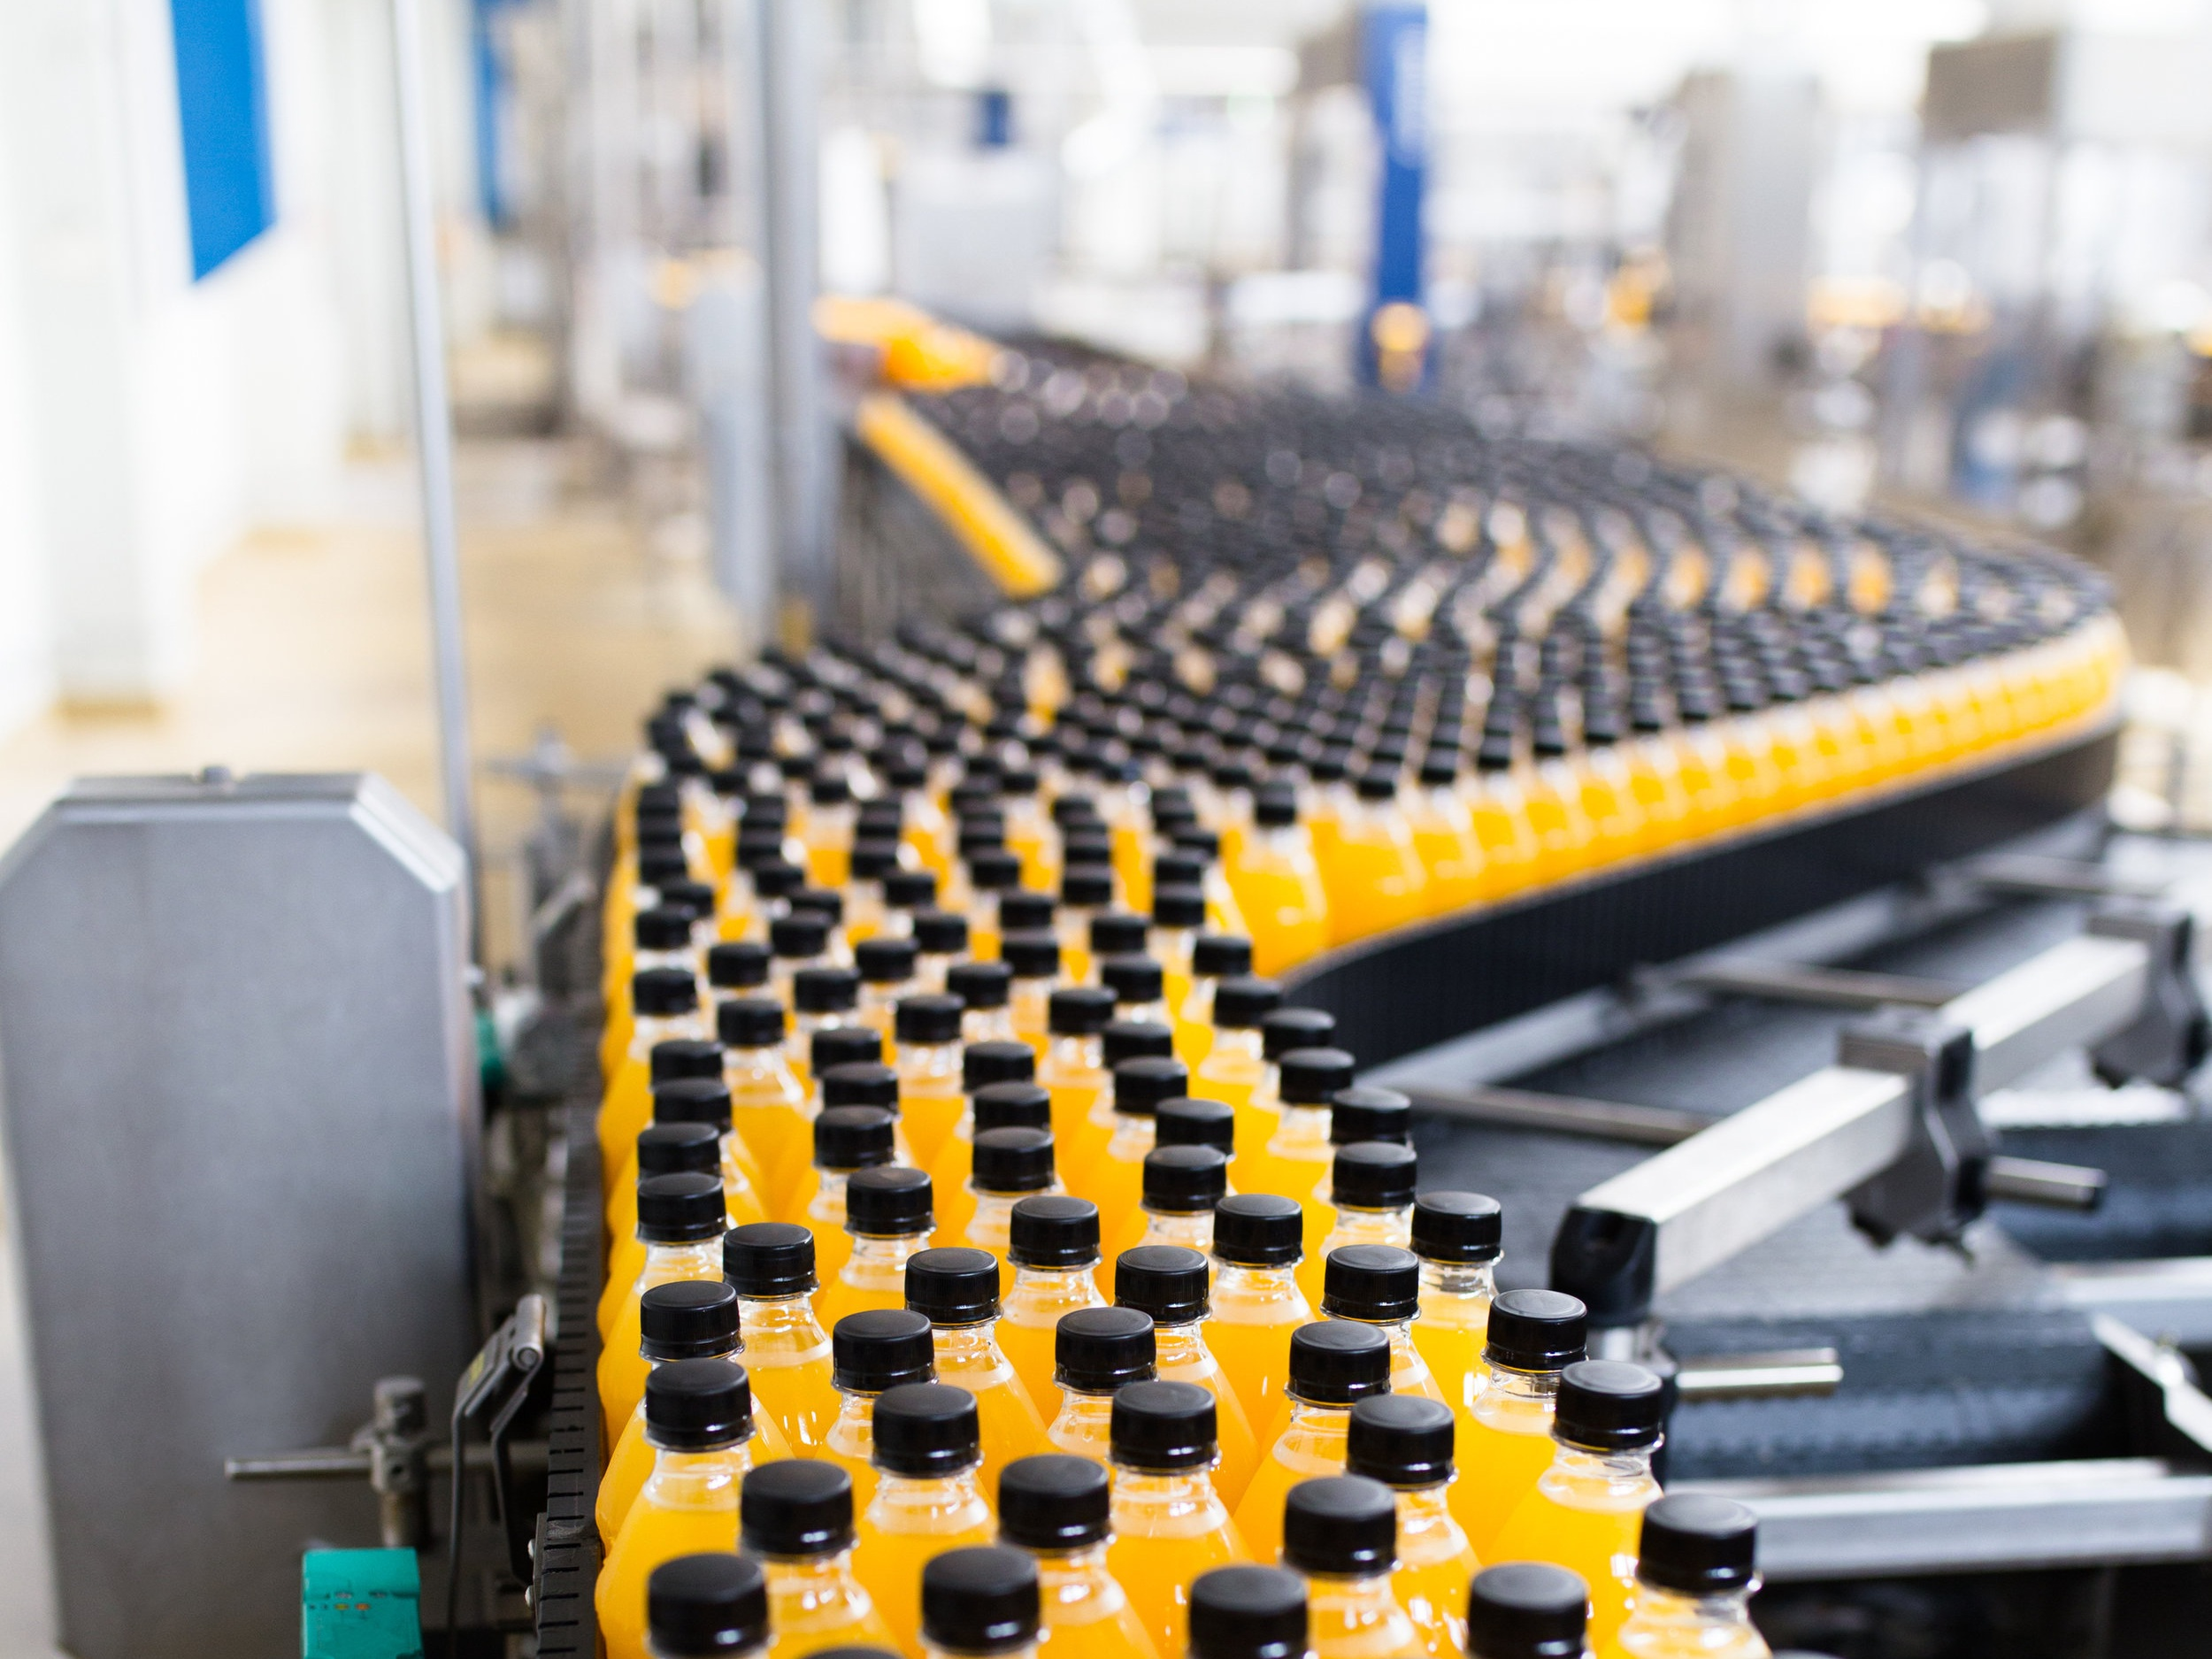 Global Manufacturer Secures Industrial IoT Networks with Segmentation - After completing a major security assessment, a global food and beverage manufacturer uncovered an opportunity to further strengthen its security posture. with a network segmentation solution.